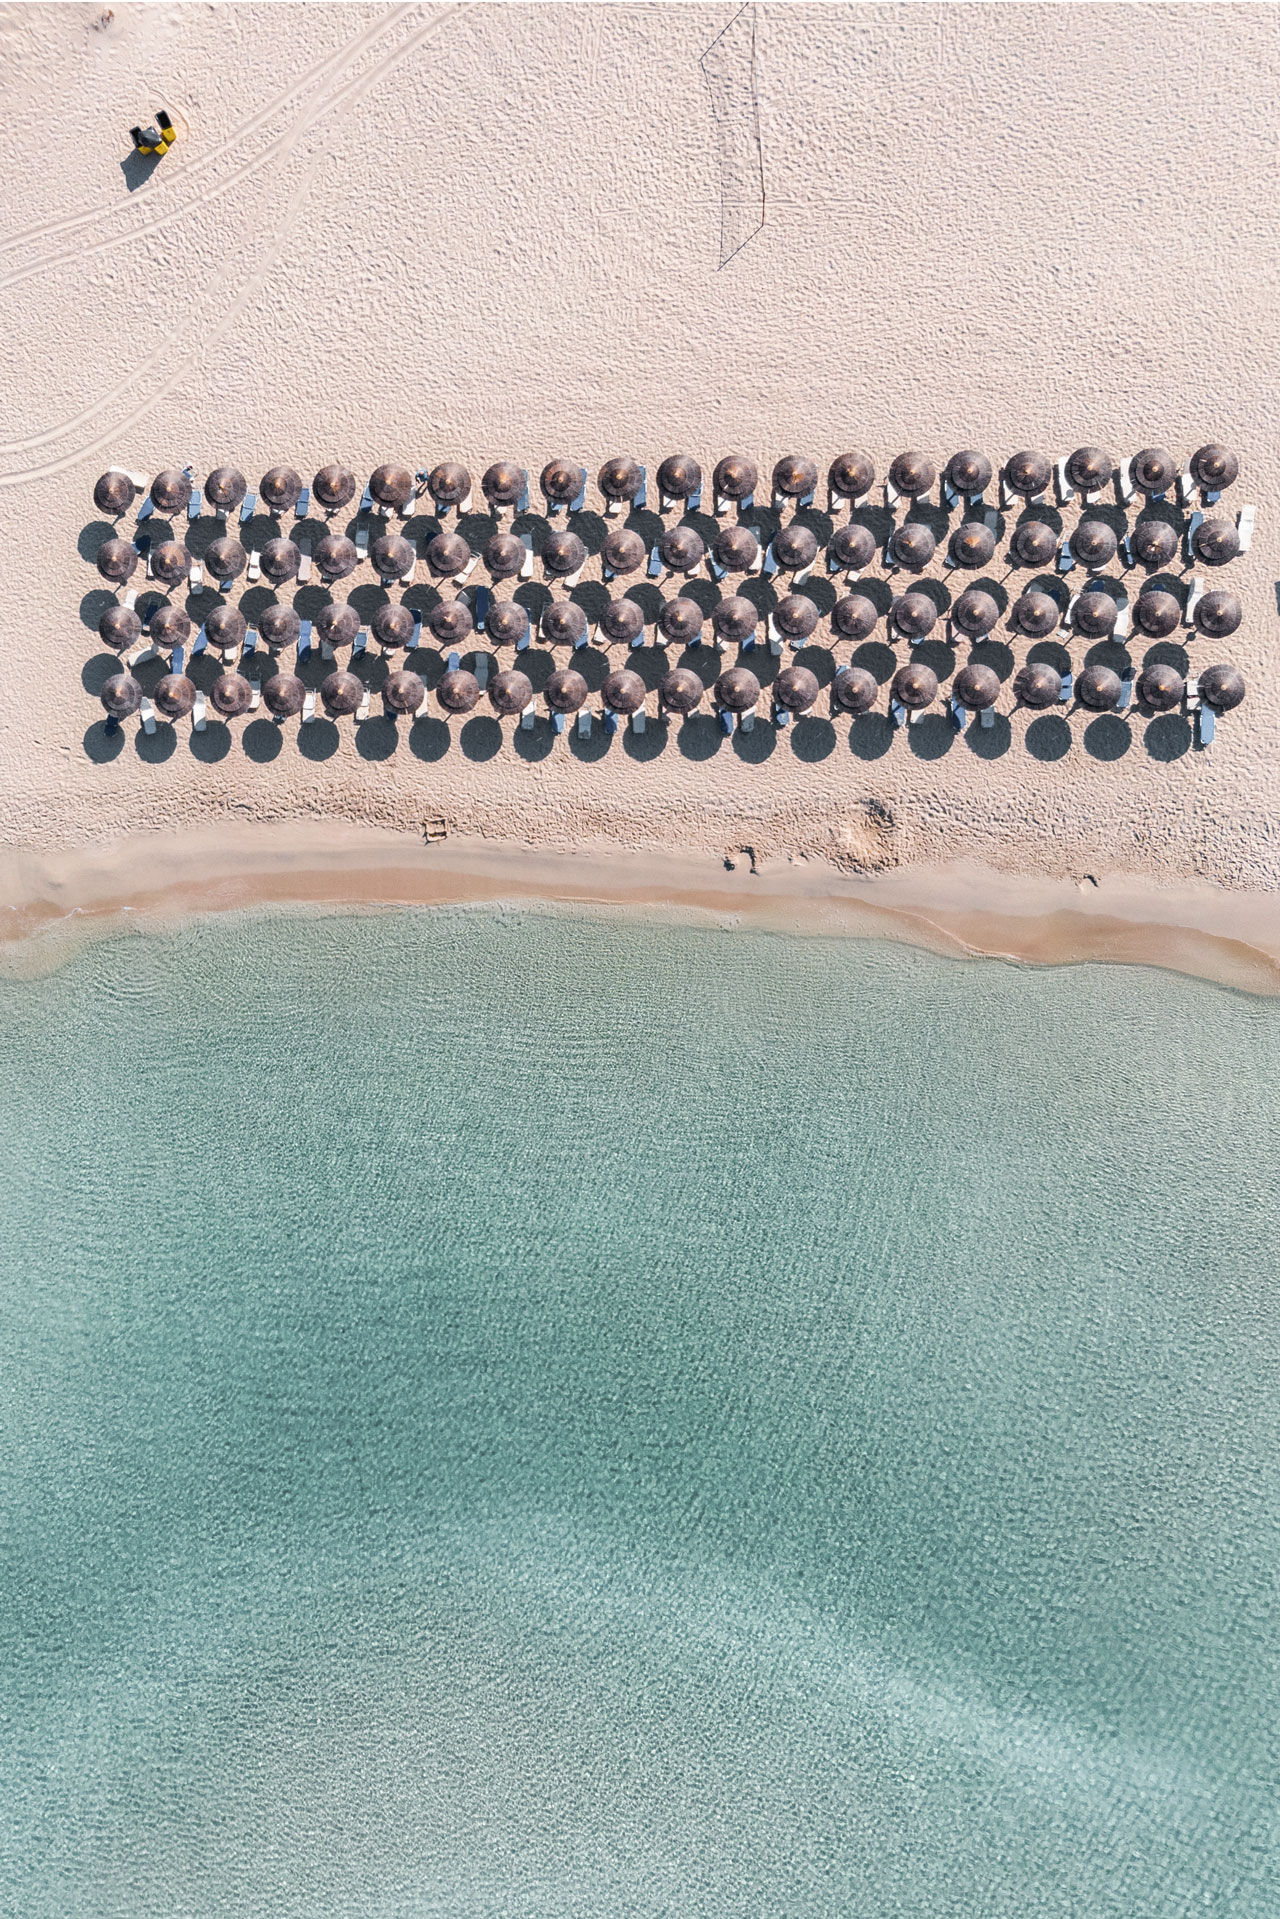 Simos, organized beach from above